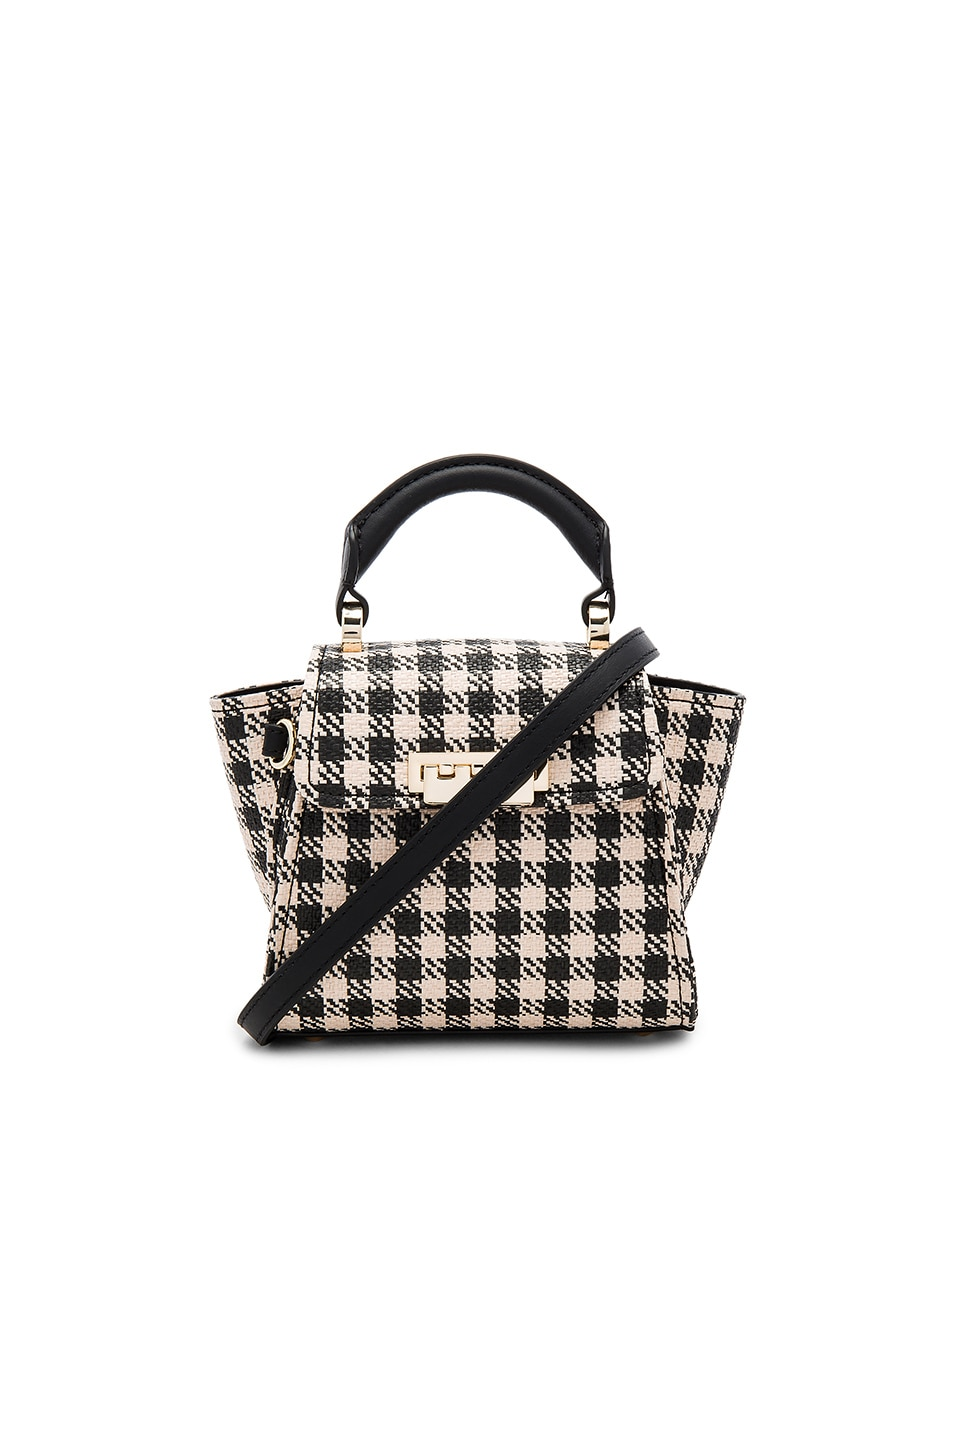 Zac Zac Posen Eartha Iconic Mini Gingham Straw Top Handle in Black